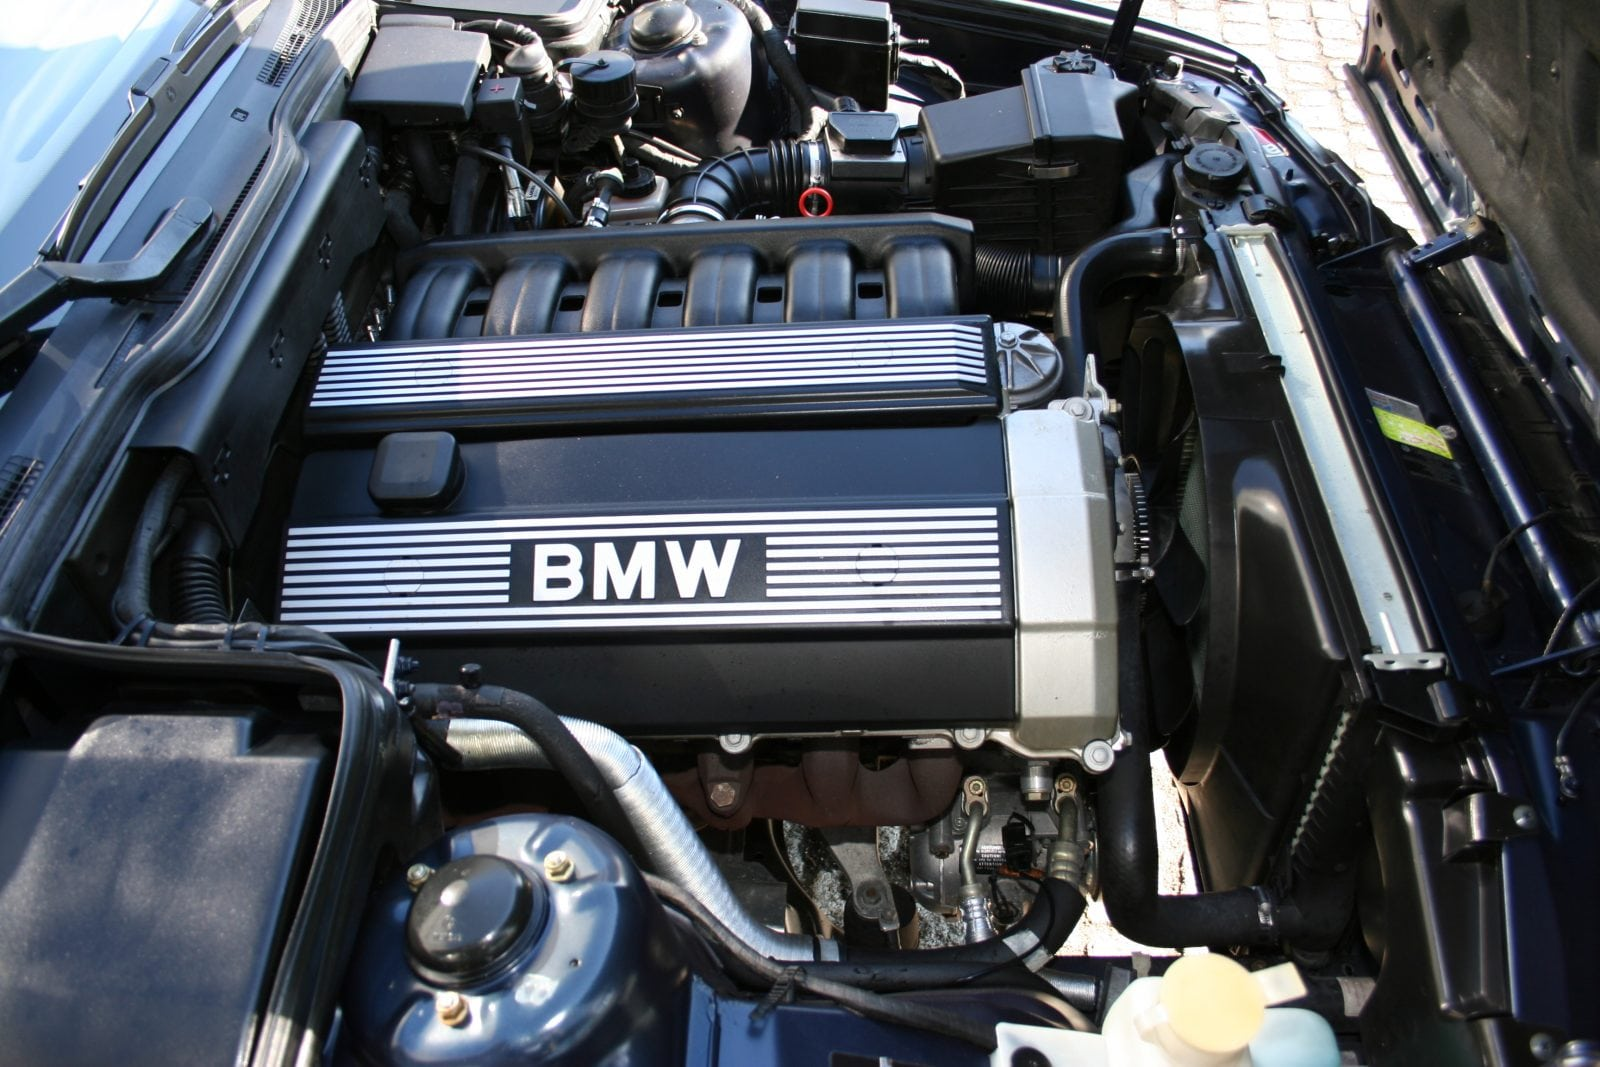 BMW M50, came to change M20